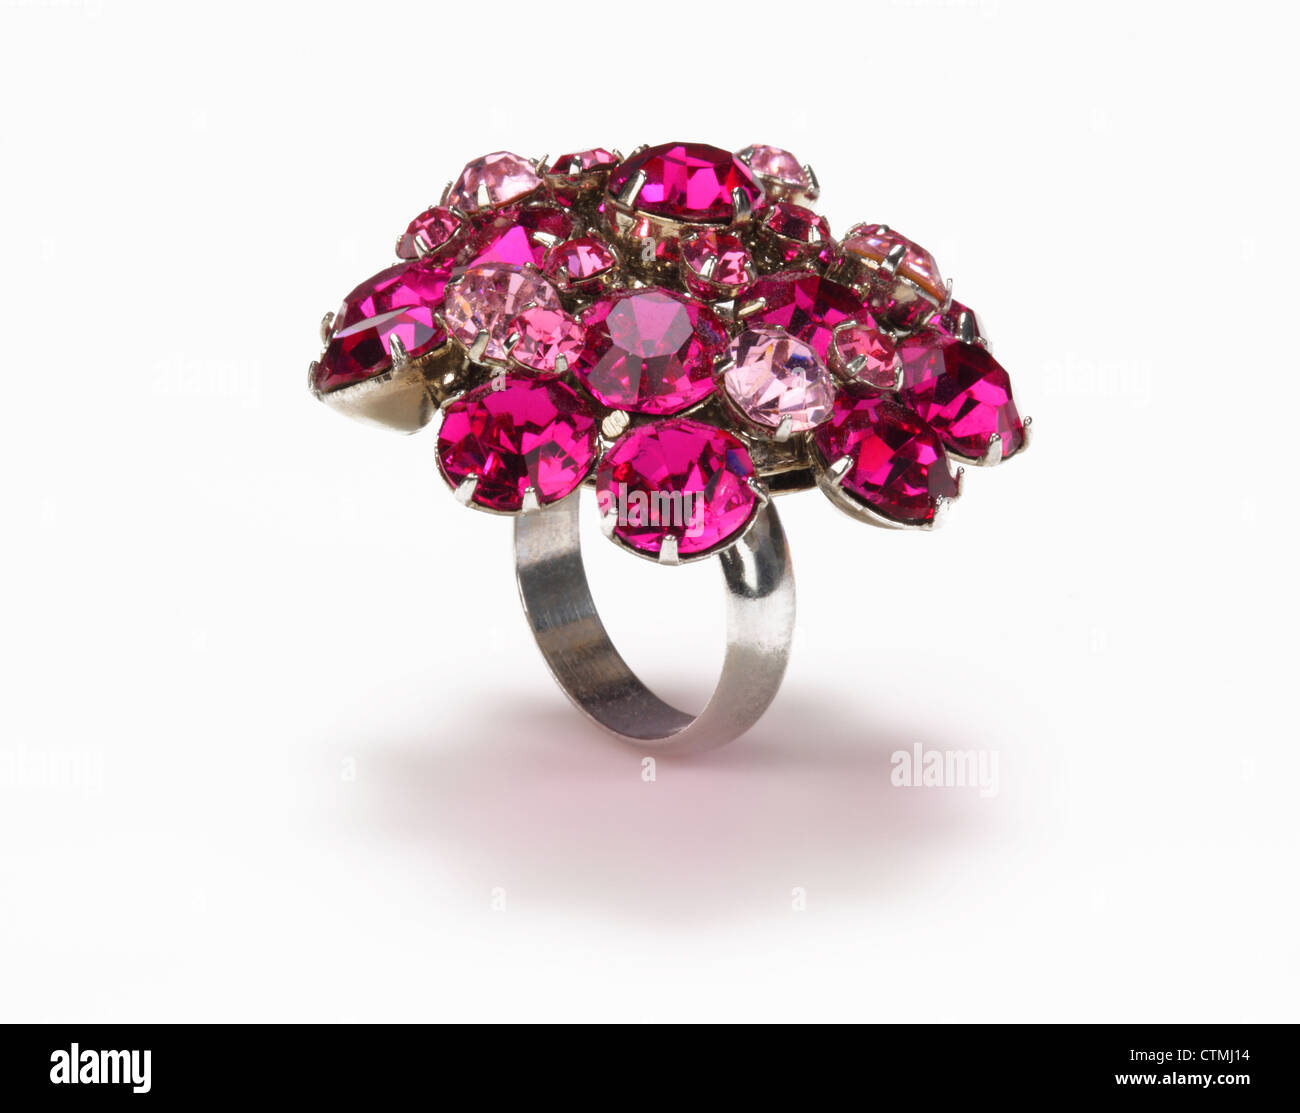 Costume jewelry. A ring with a cluster of red and pink jewels. - Stock Image